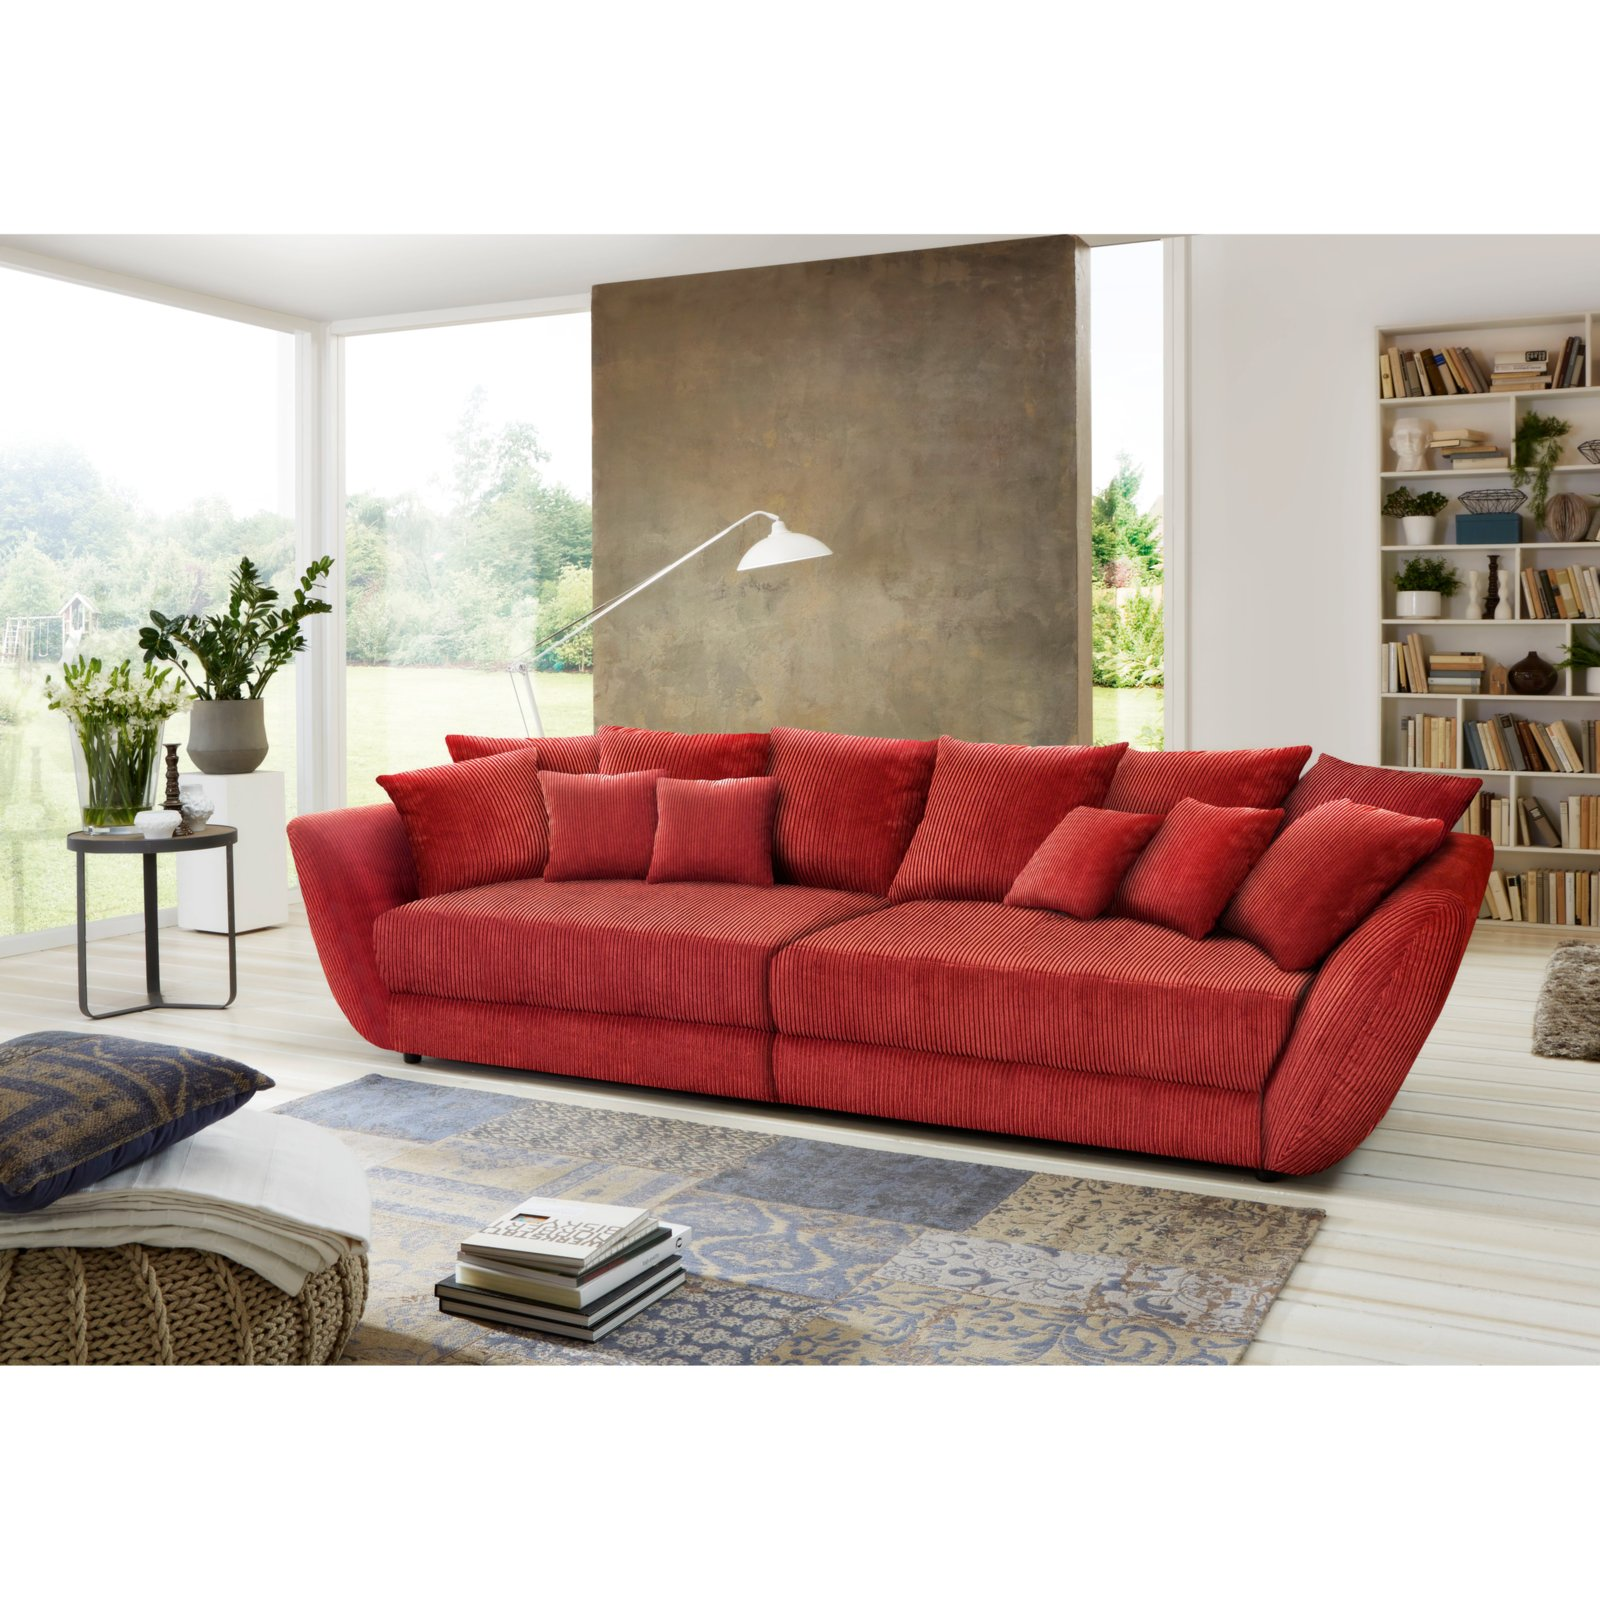 Bigsofa Blair Big Sofa Rot Big Sofa Rot With Big Sofa Rot Big Sofa Rot Hu Von